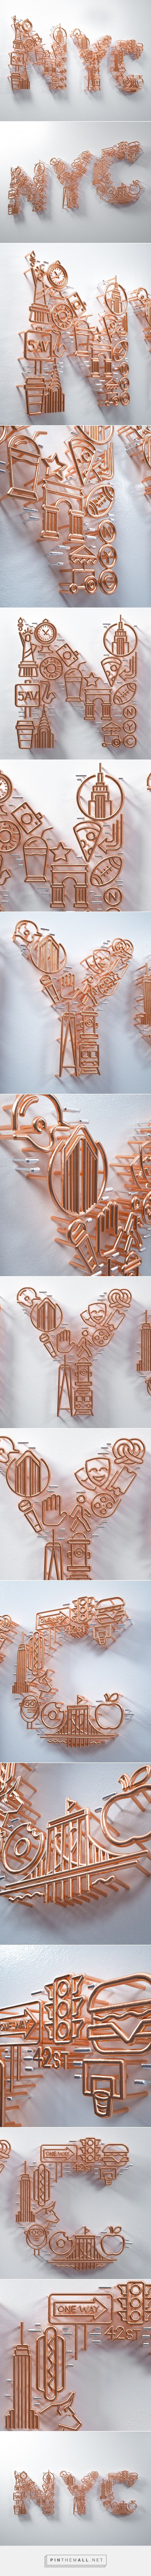 NYC // Typography / Type Design / Font Design / Inspiration / Ideas / Line Art / Line / Outline / Elements / City / New York City Inspired / Rose Gold / Pattern / Empire State / Statue of Liberty / Broadway / Hot Dog / Pizza / Creative / Modern / Beautiful